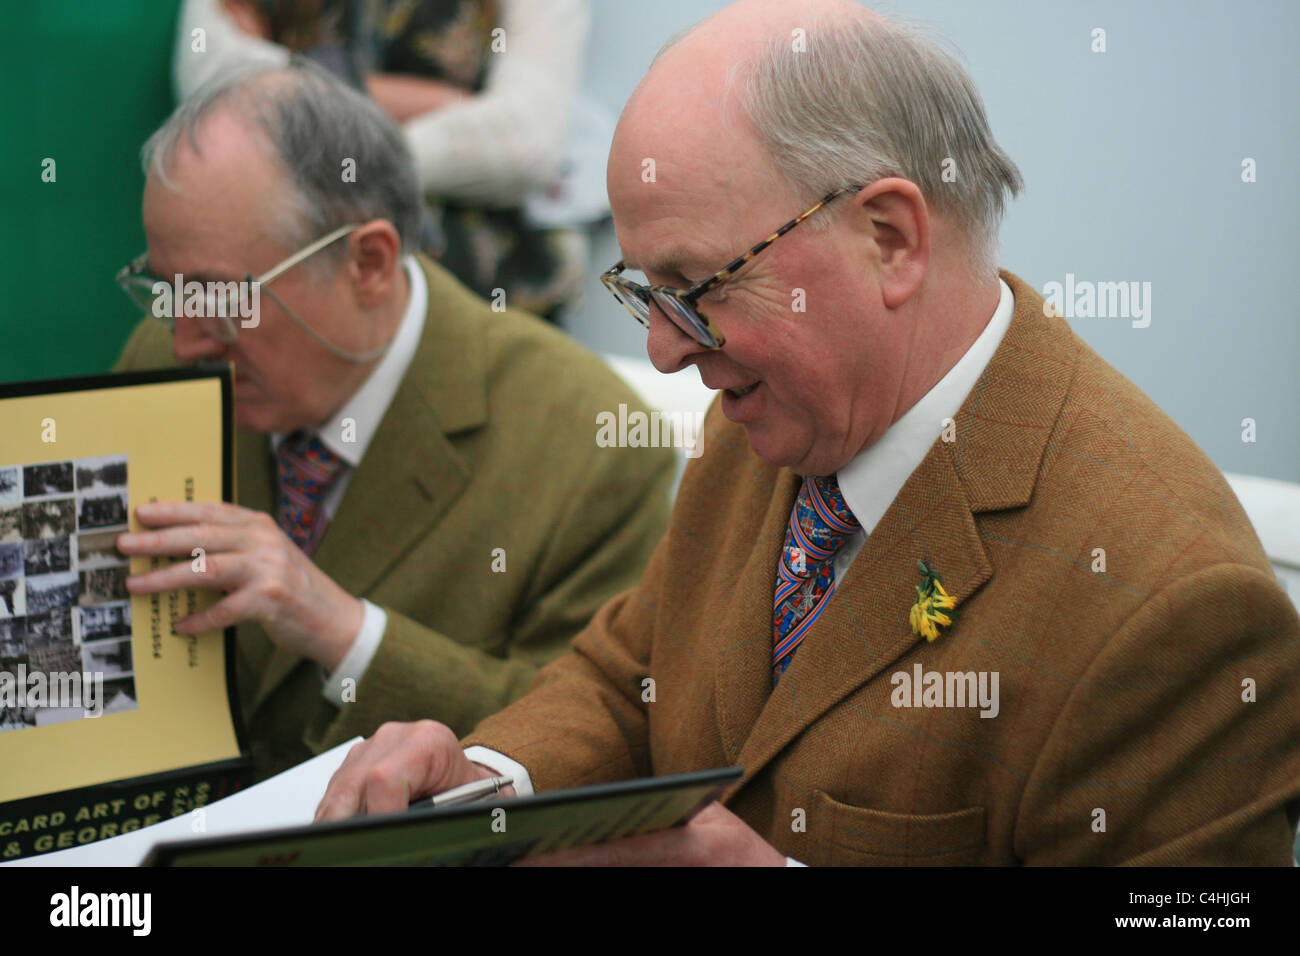 Gilbert and George, iconic East End London artists since the 1960s, sign their books at the Hay Literary Festival, - Stock Image